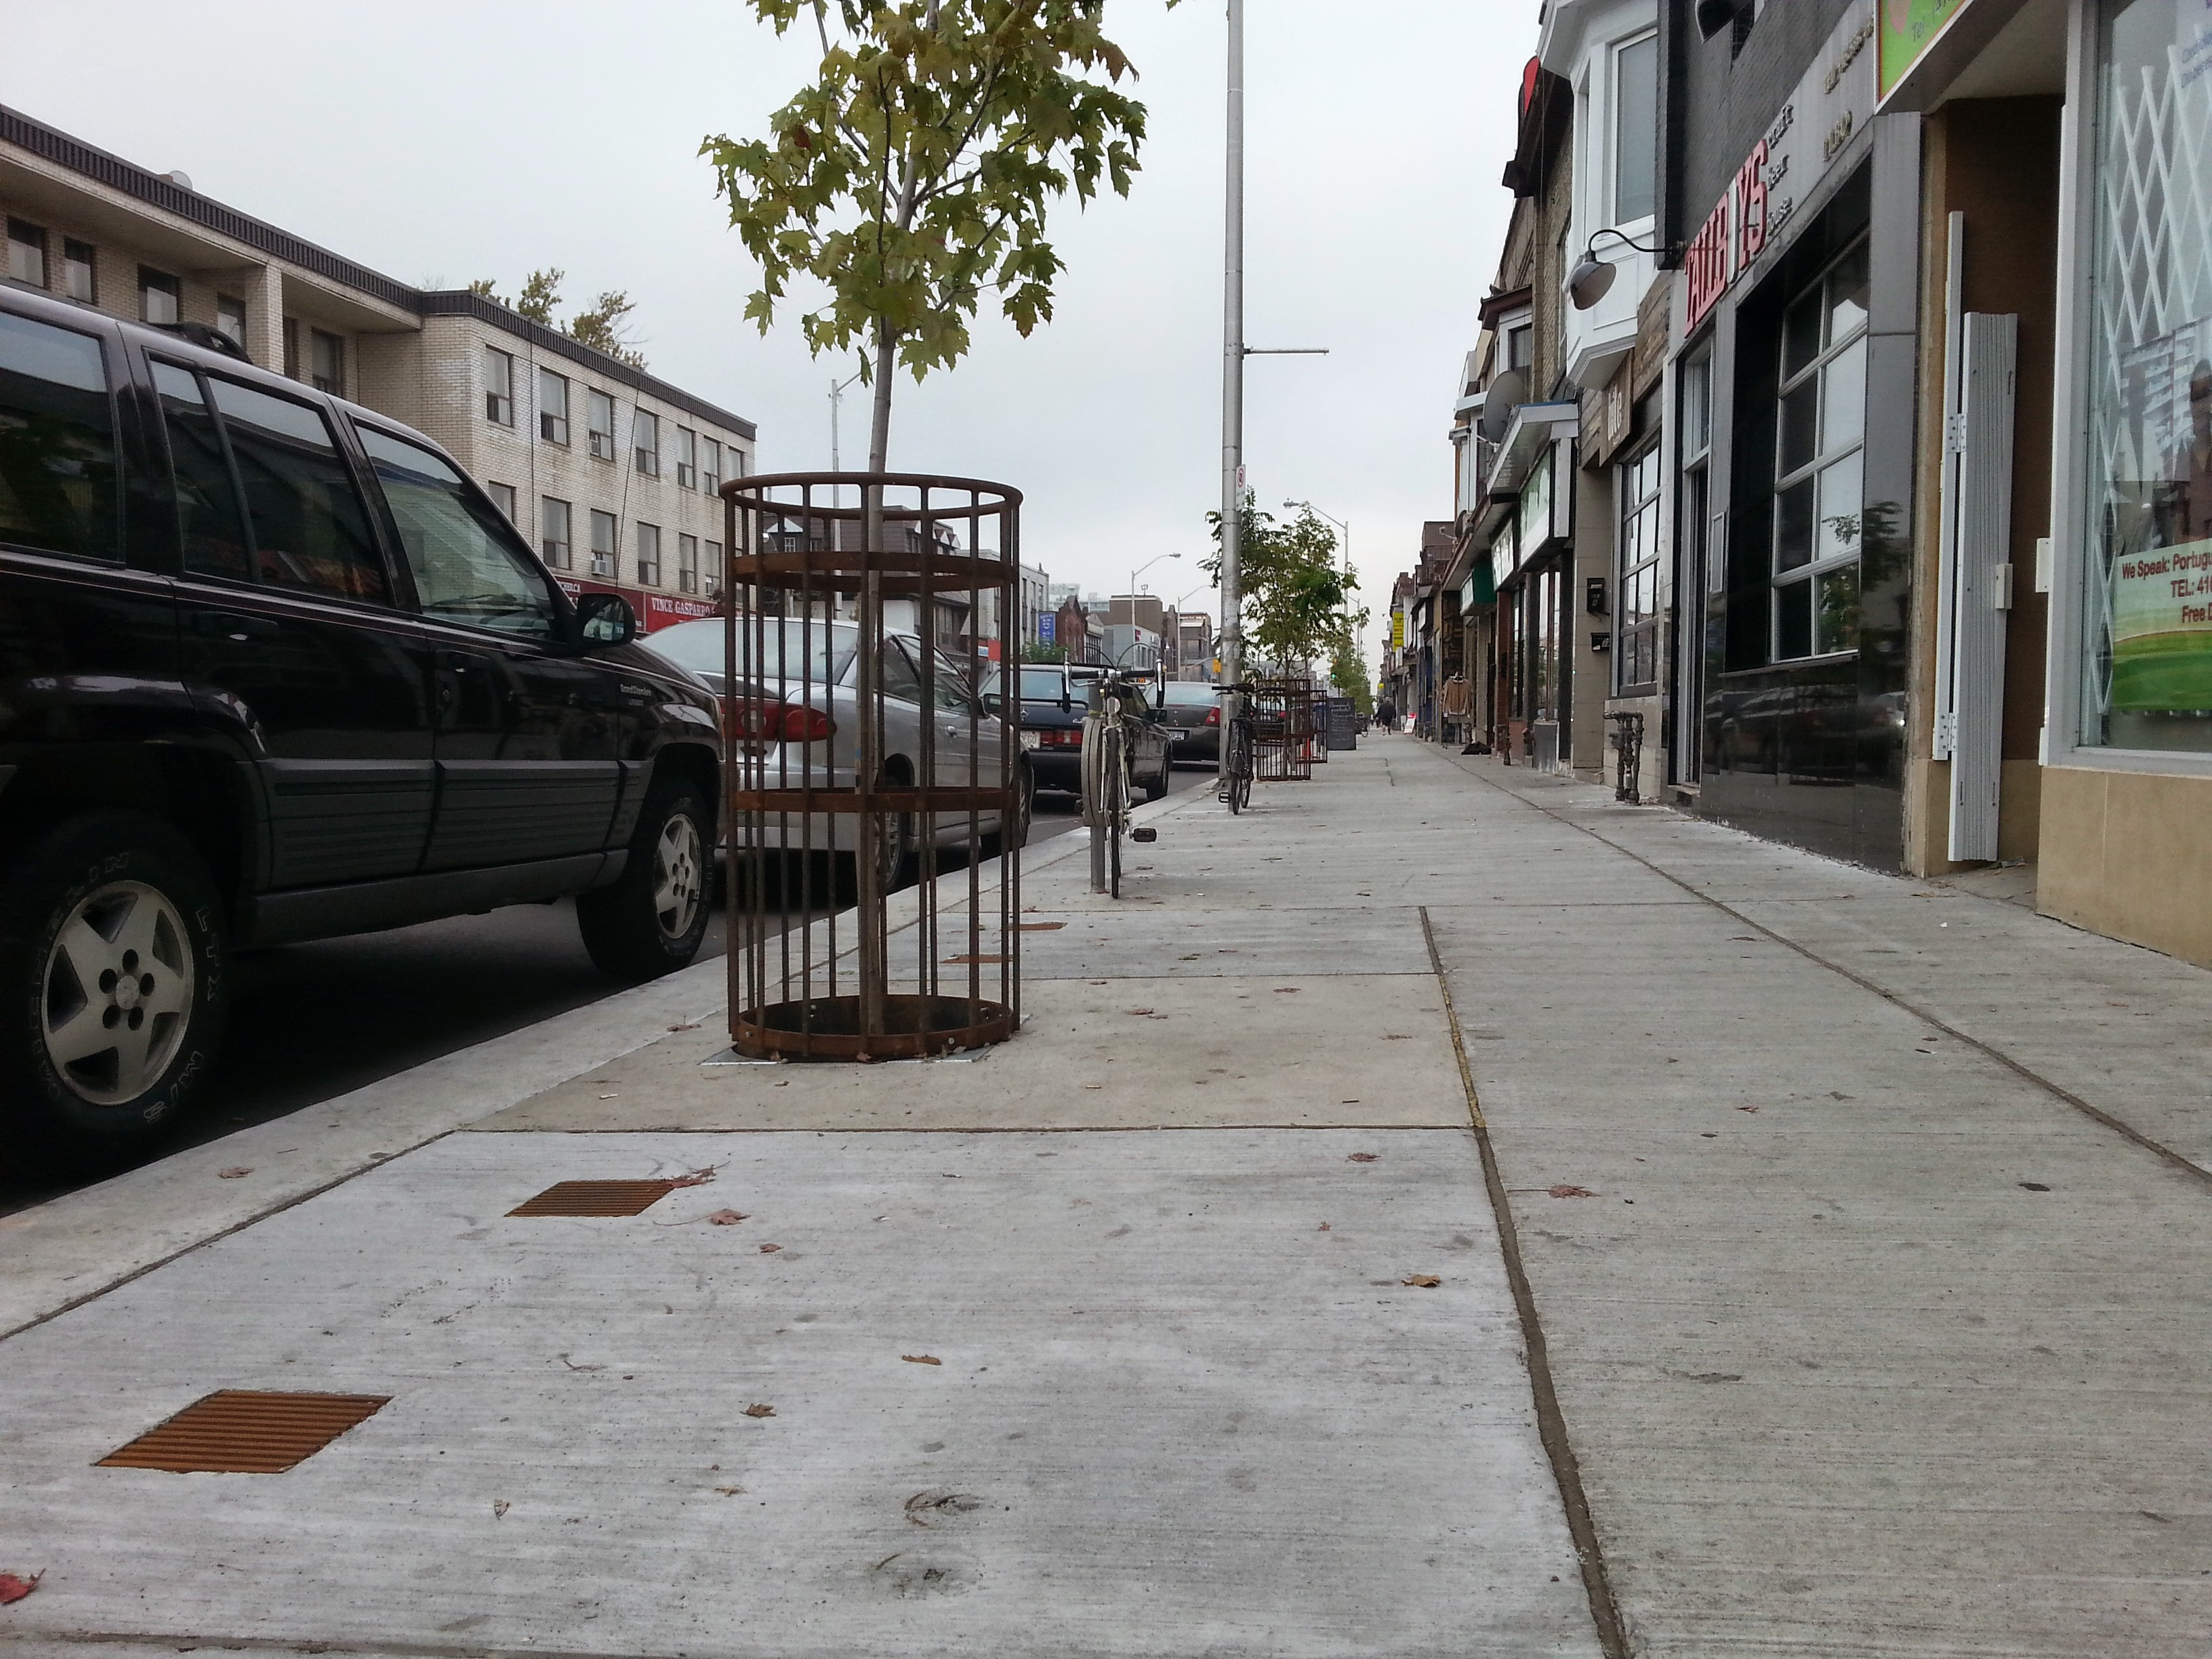 New Bloor Street tree planting, including guards and watering grates